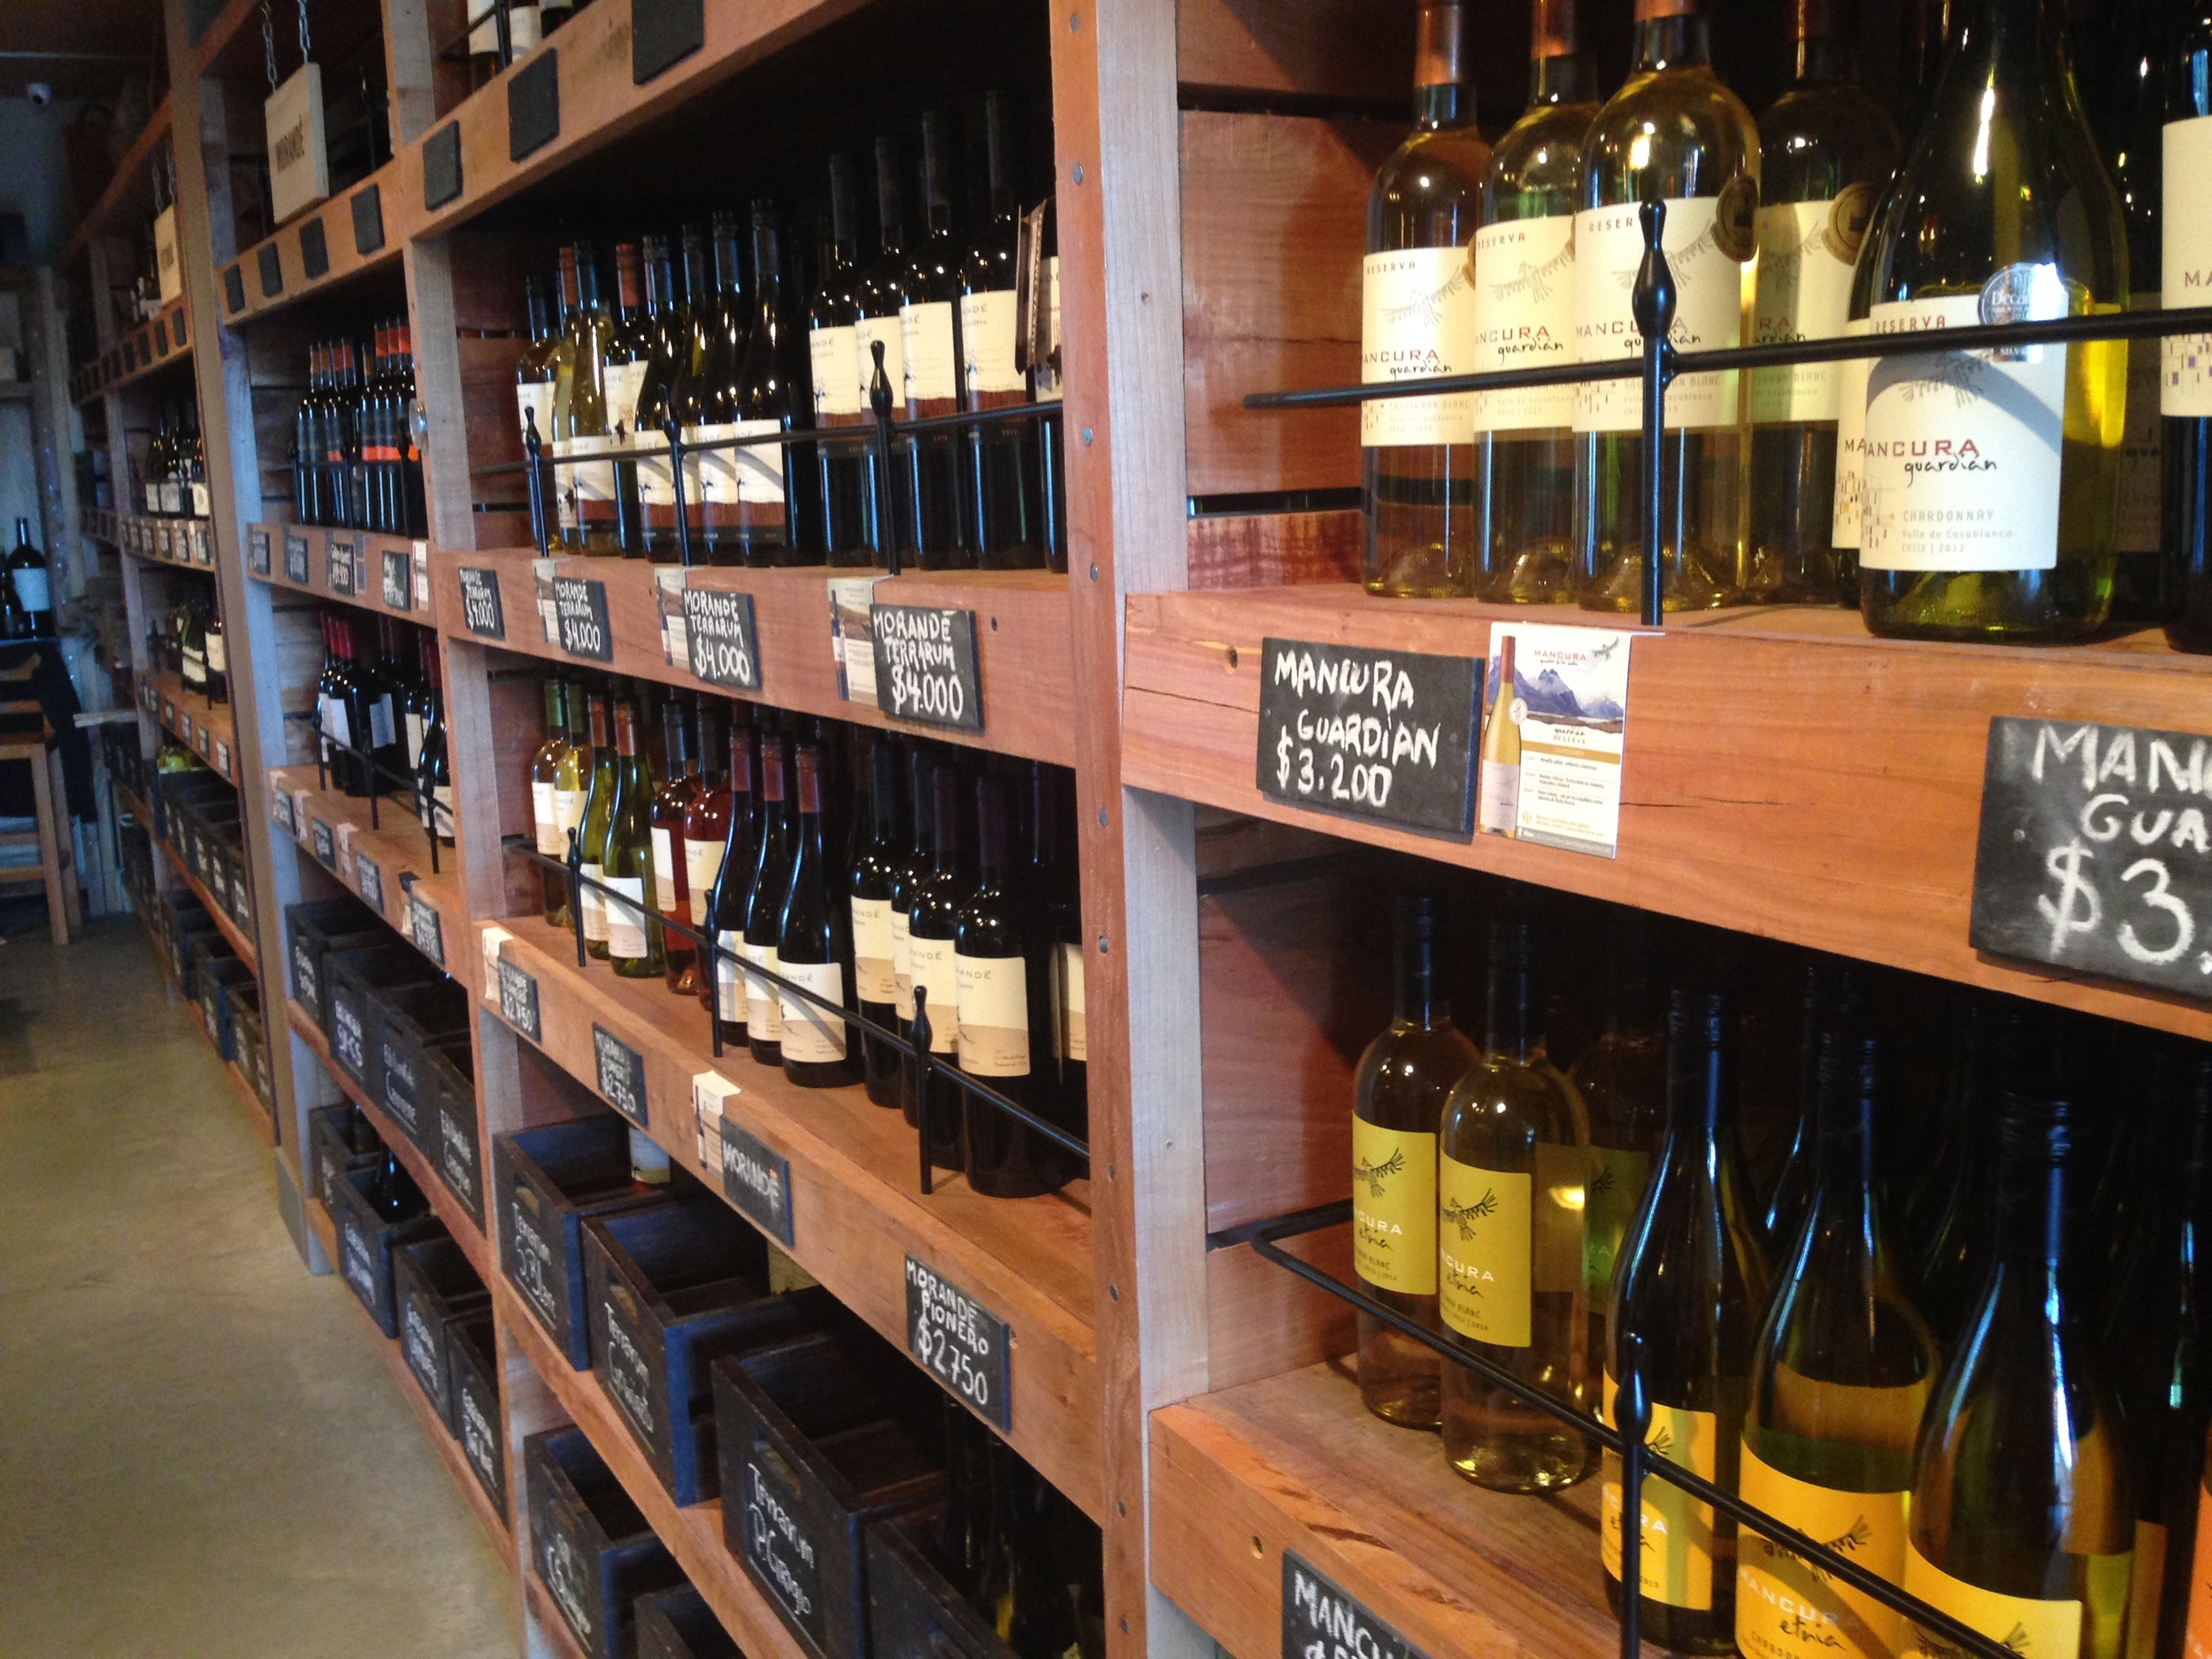 Wine selection at House, Casa Del Vino, prices in the Chilean Peso. Credit   Gabe Manzo